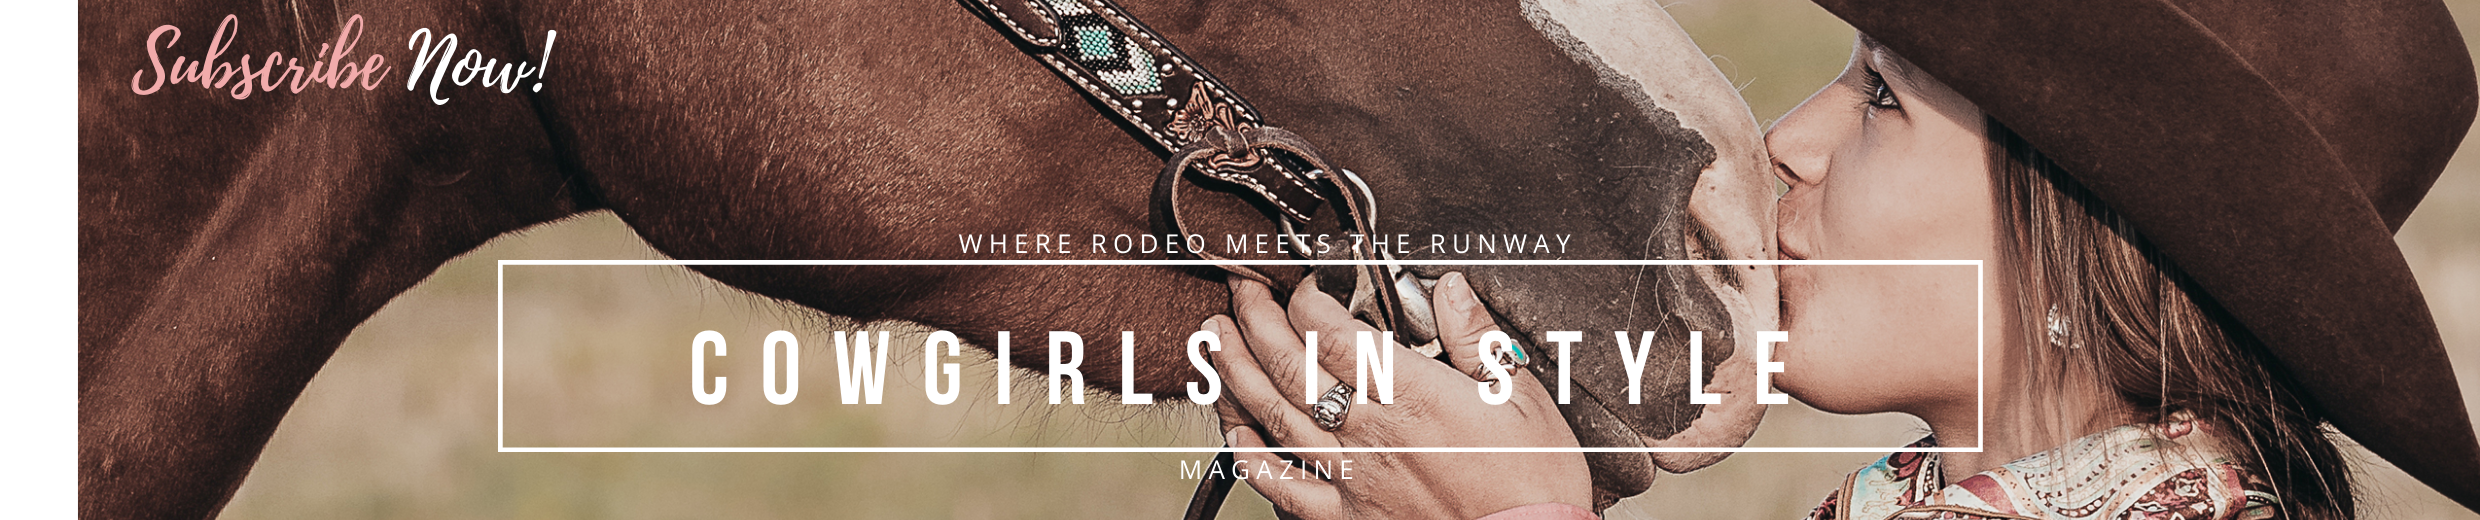 Ranch and Famous Boutique - Cowgirls In Style Magazine